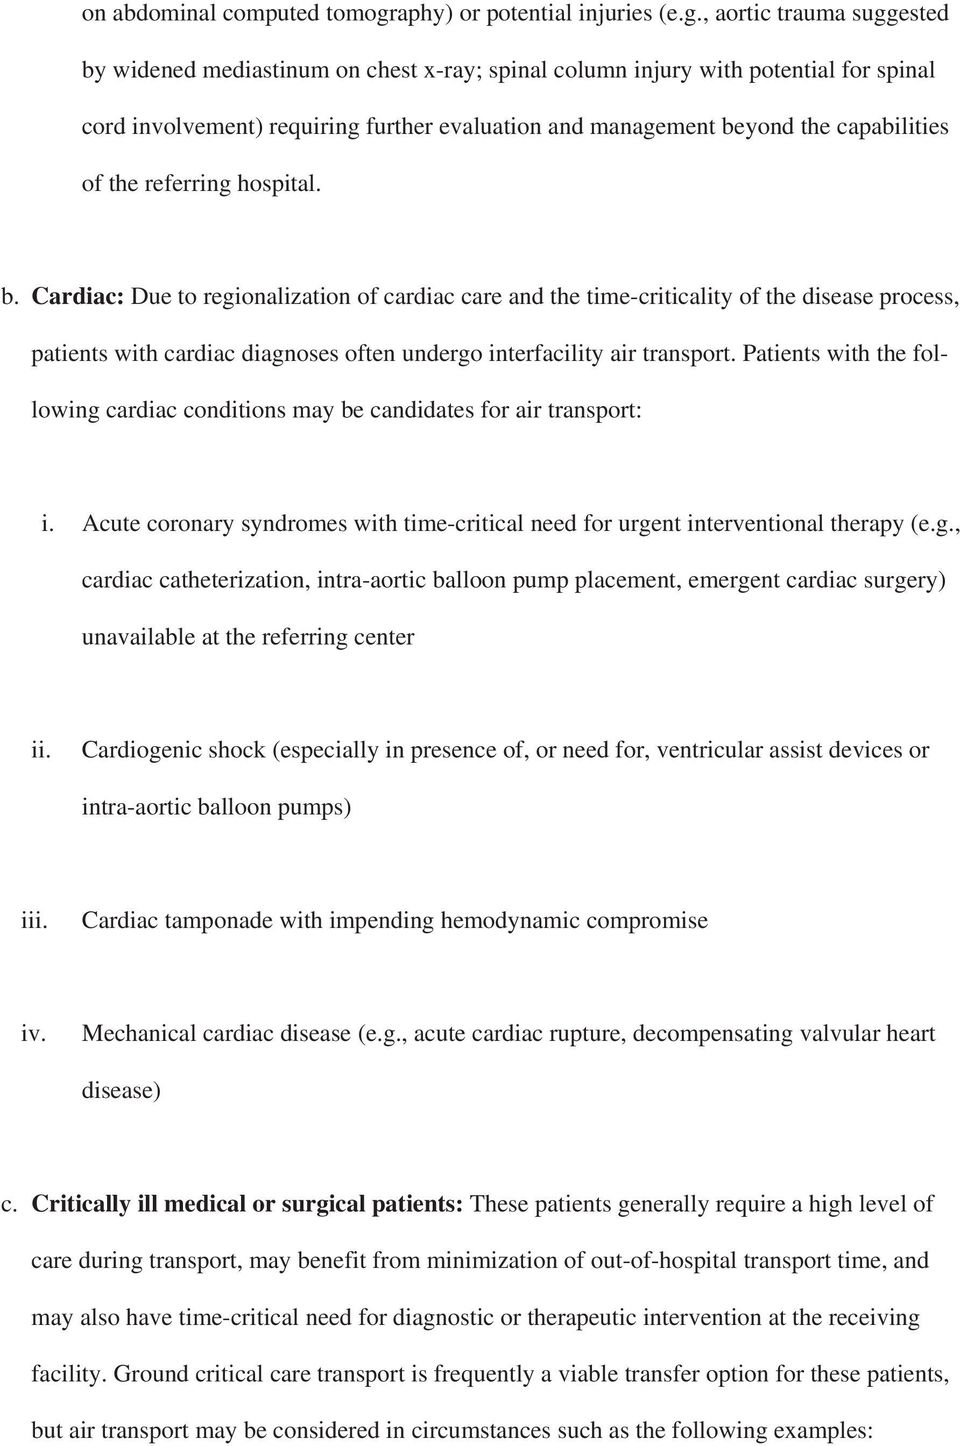 , aortic trauma suggested by widened mediastinum on chest x-ray; spinal column injury with potential for spinal cord involvement) requiring further evaluation and management beyond the capabilities